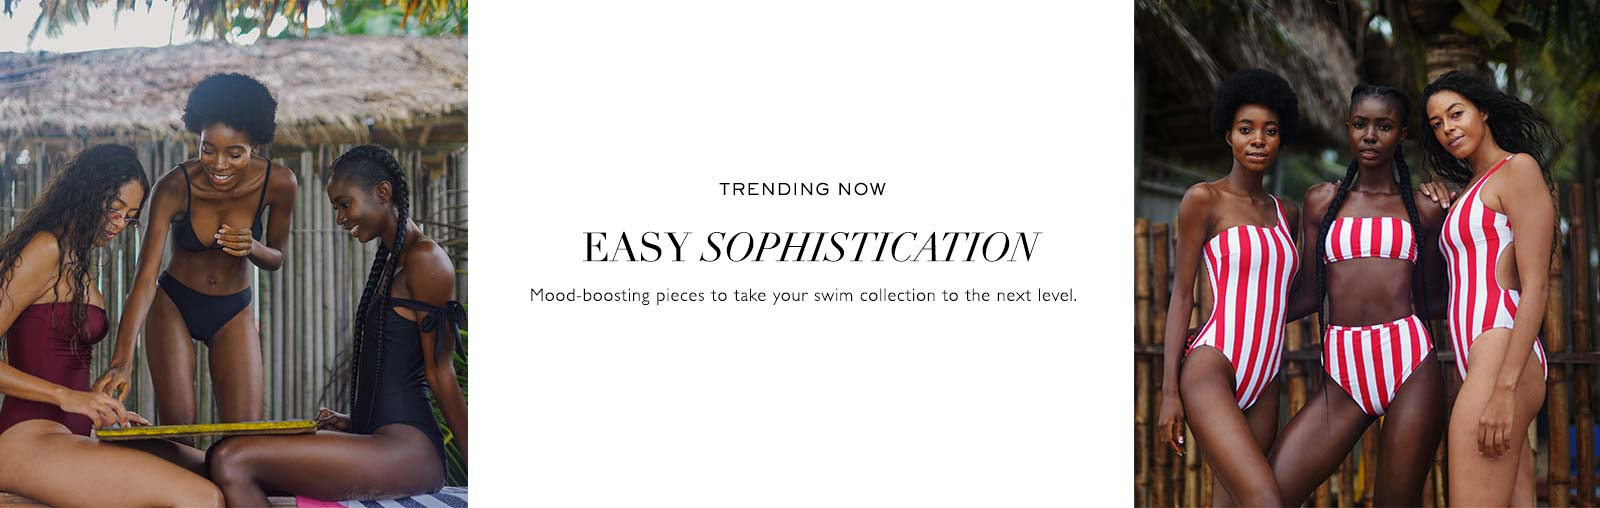 TRENDING NOW - EASY SOPHISTICATION - Mood boosting pieces to take your swim collection to the next level.